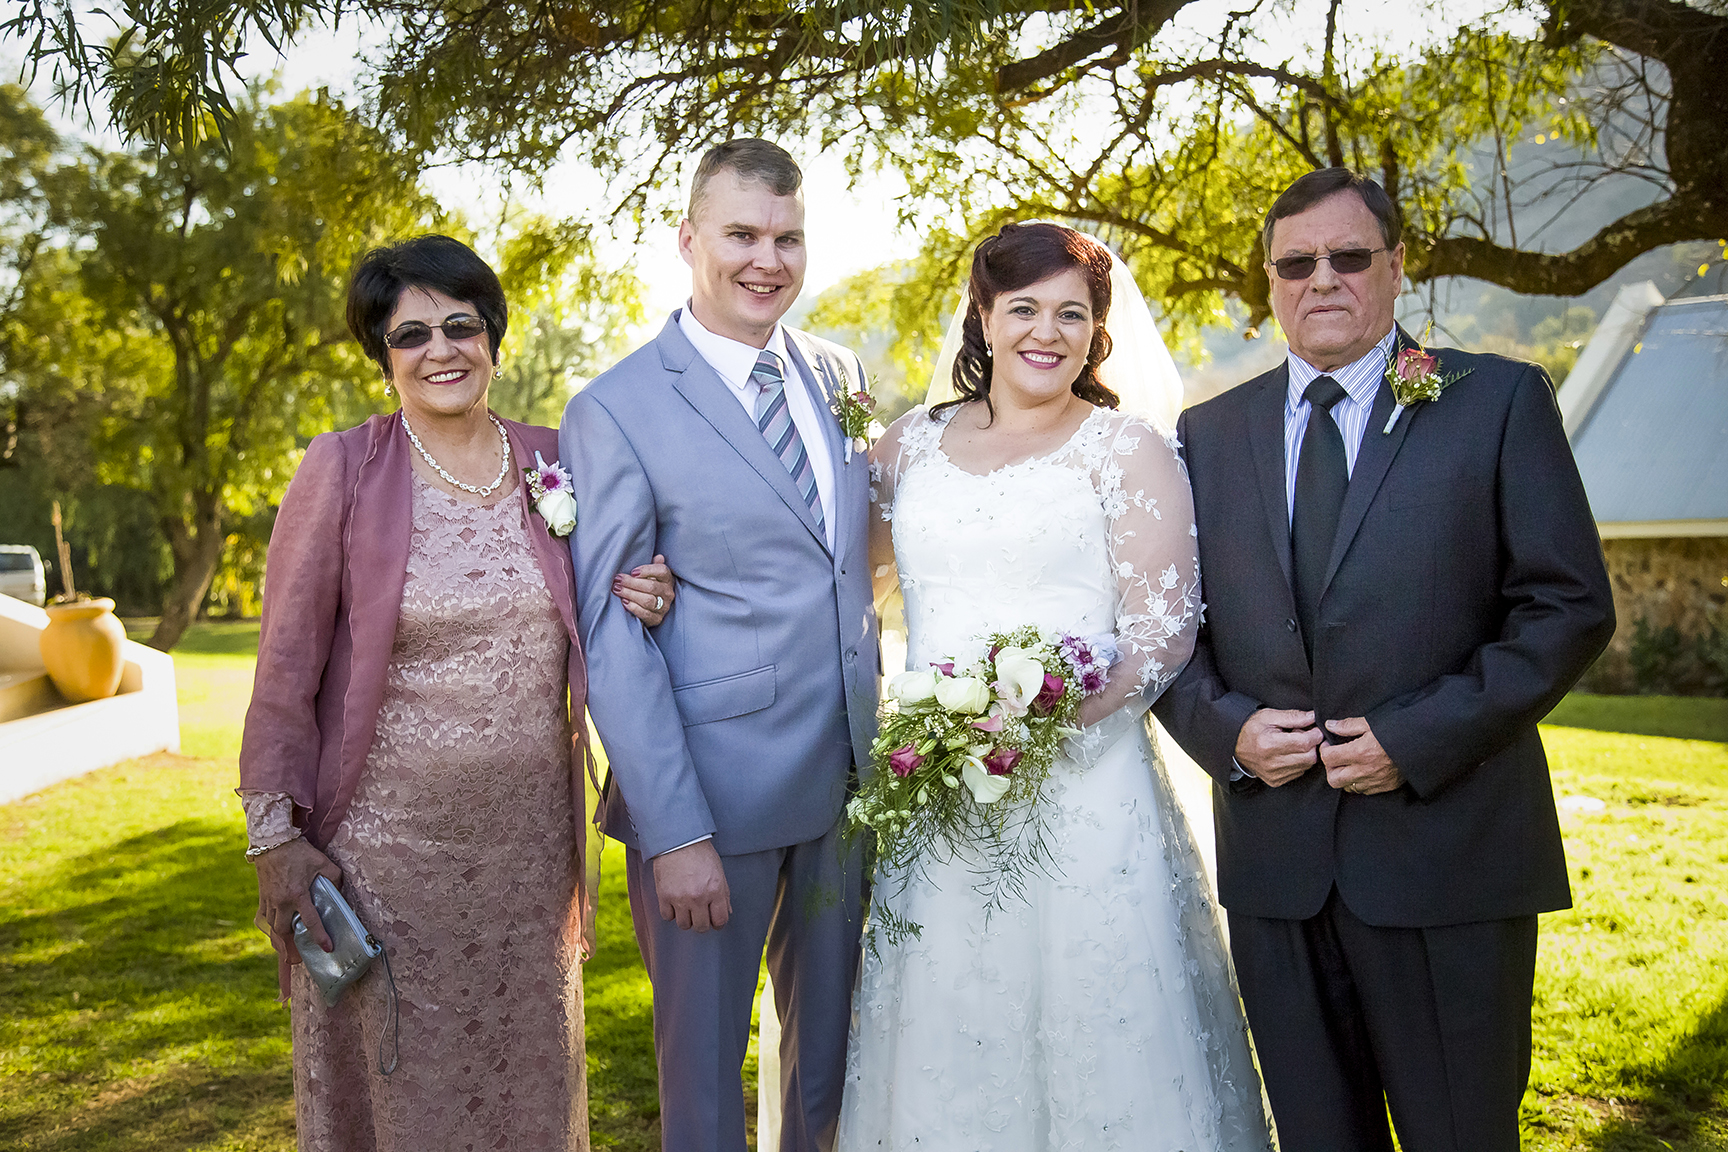 How to save time on your family photos on your wedding day